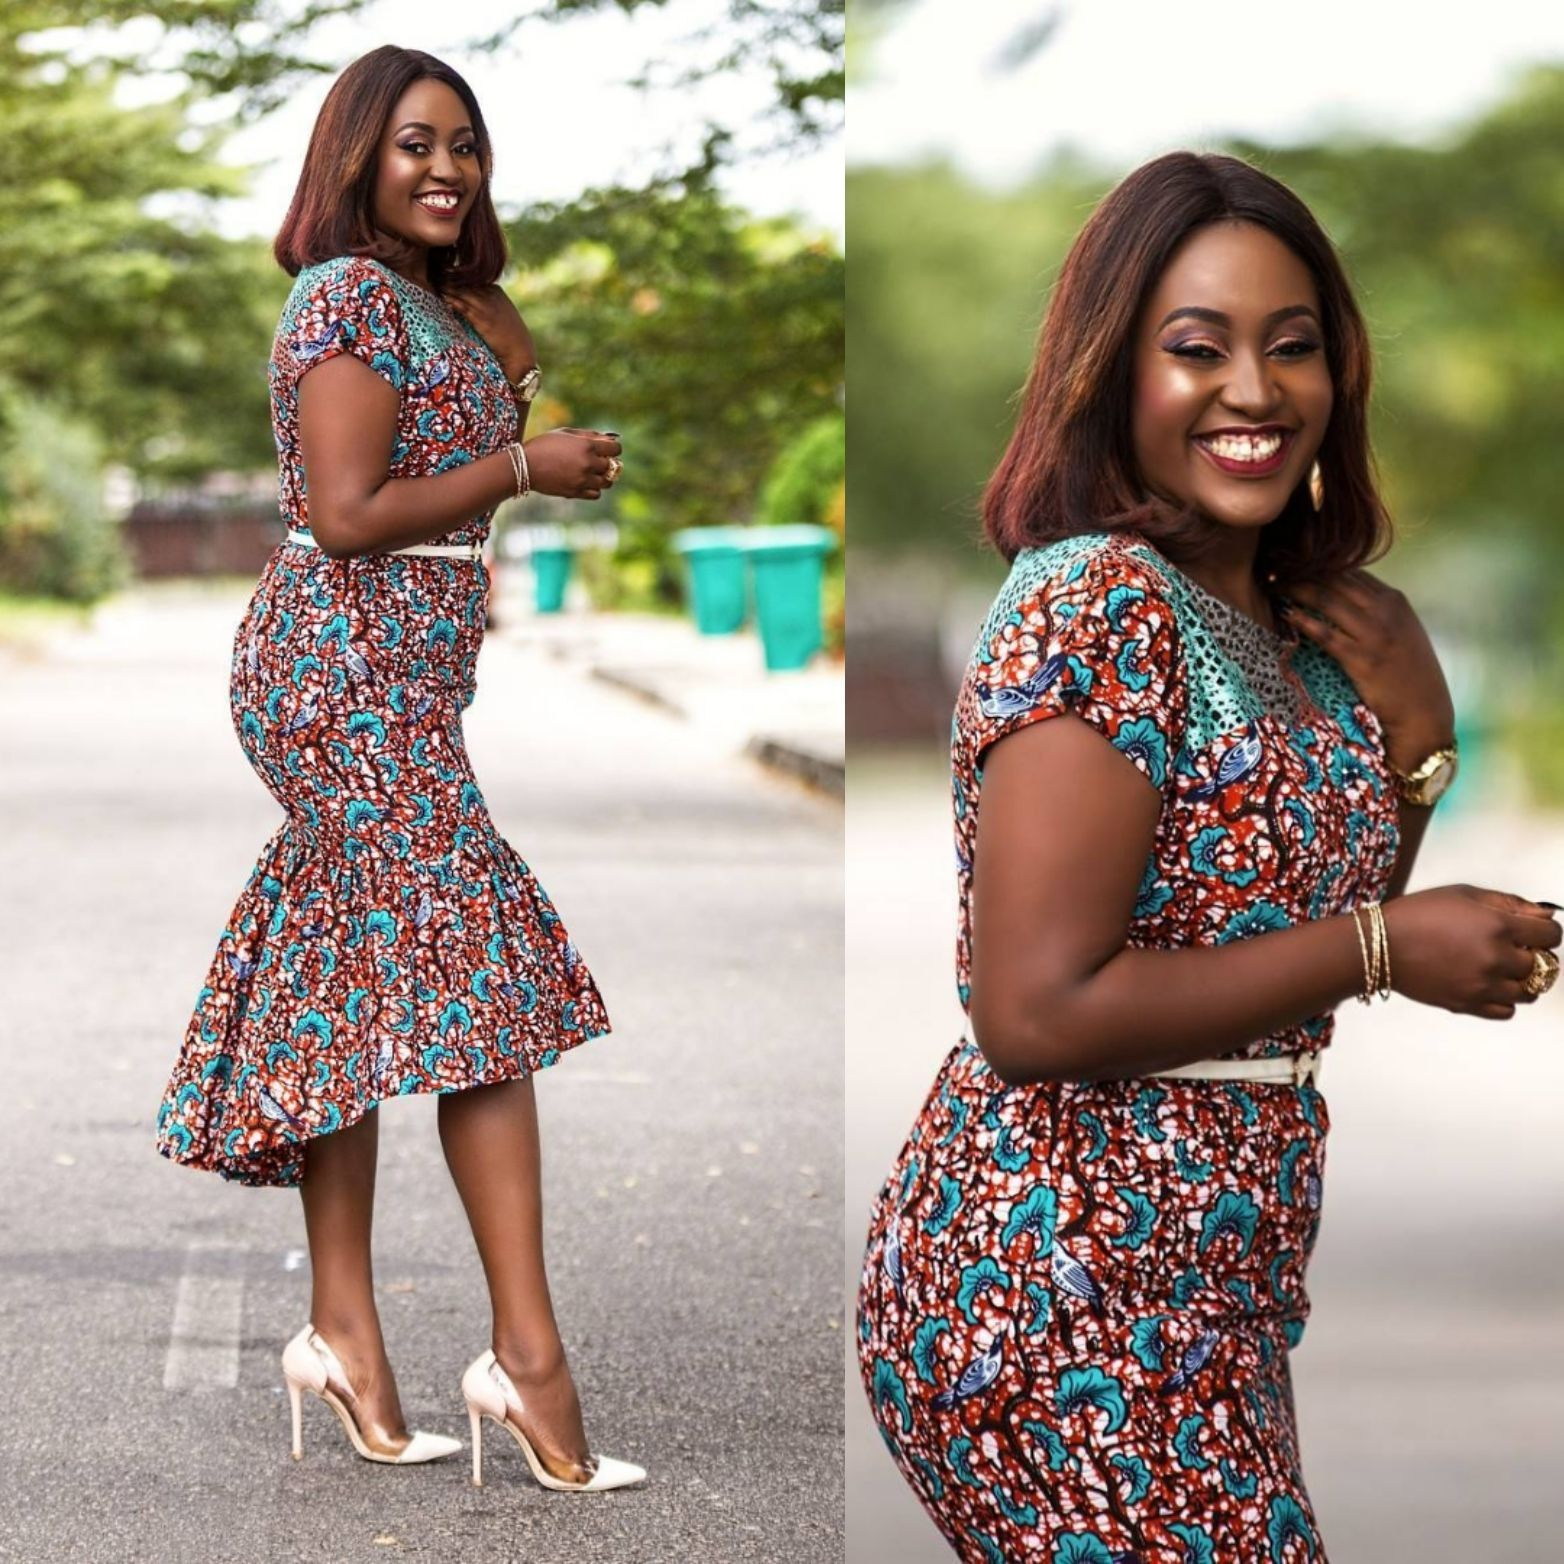 d3ad7be3c1d Love wearing Ankara  If yes